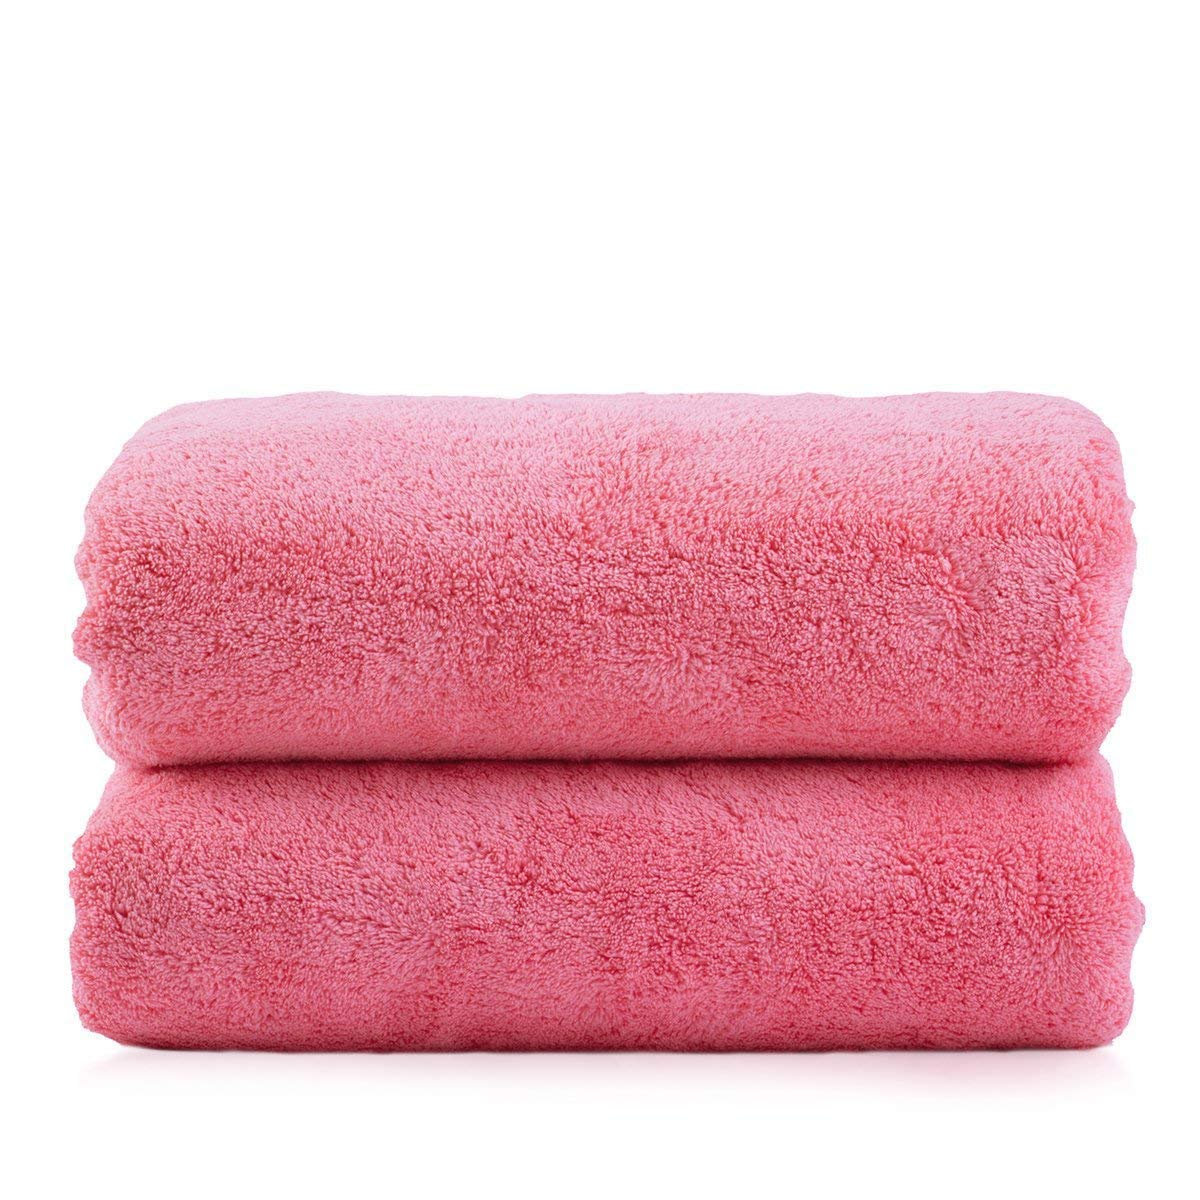 2 Pack Microfiber Plush Bath Towel 30 x 60 inches 350GSM Soft Absorbent 6 Colors